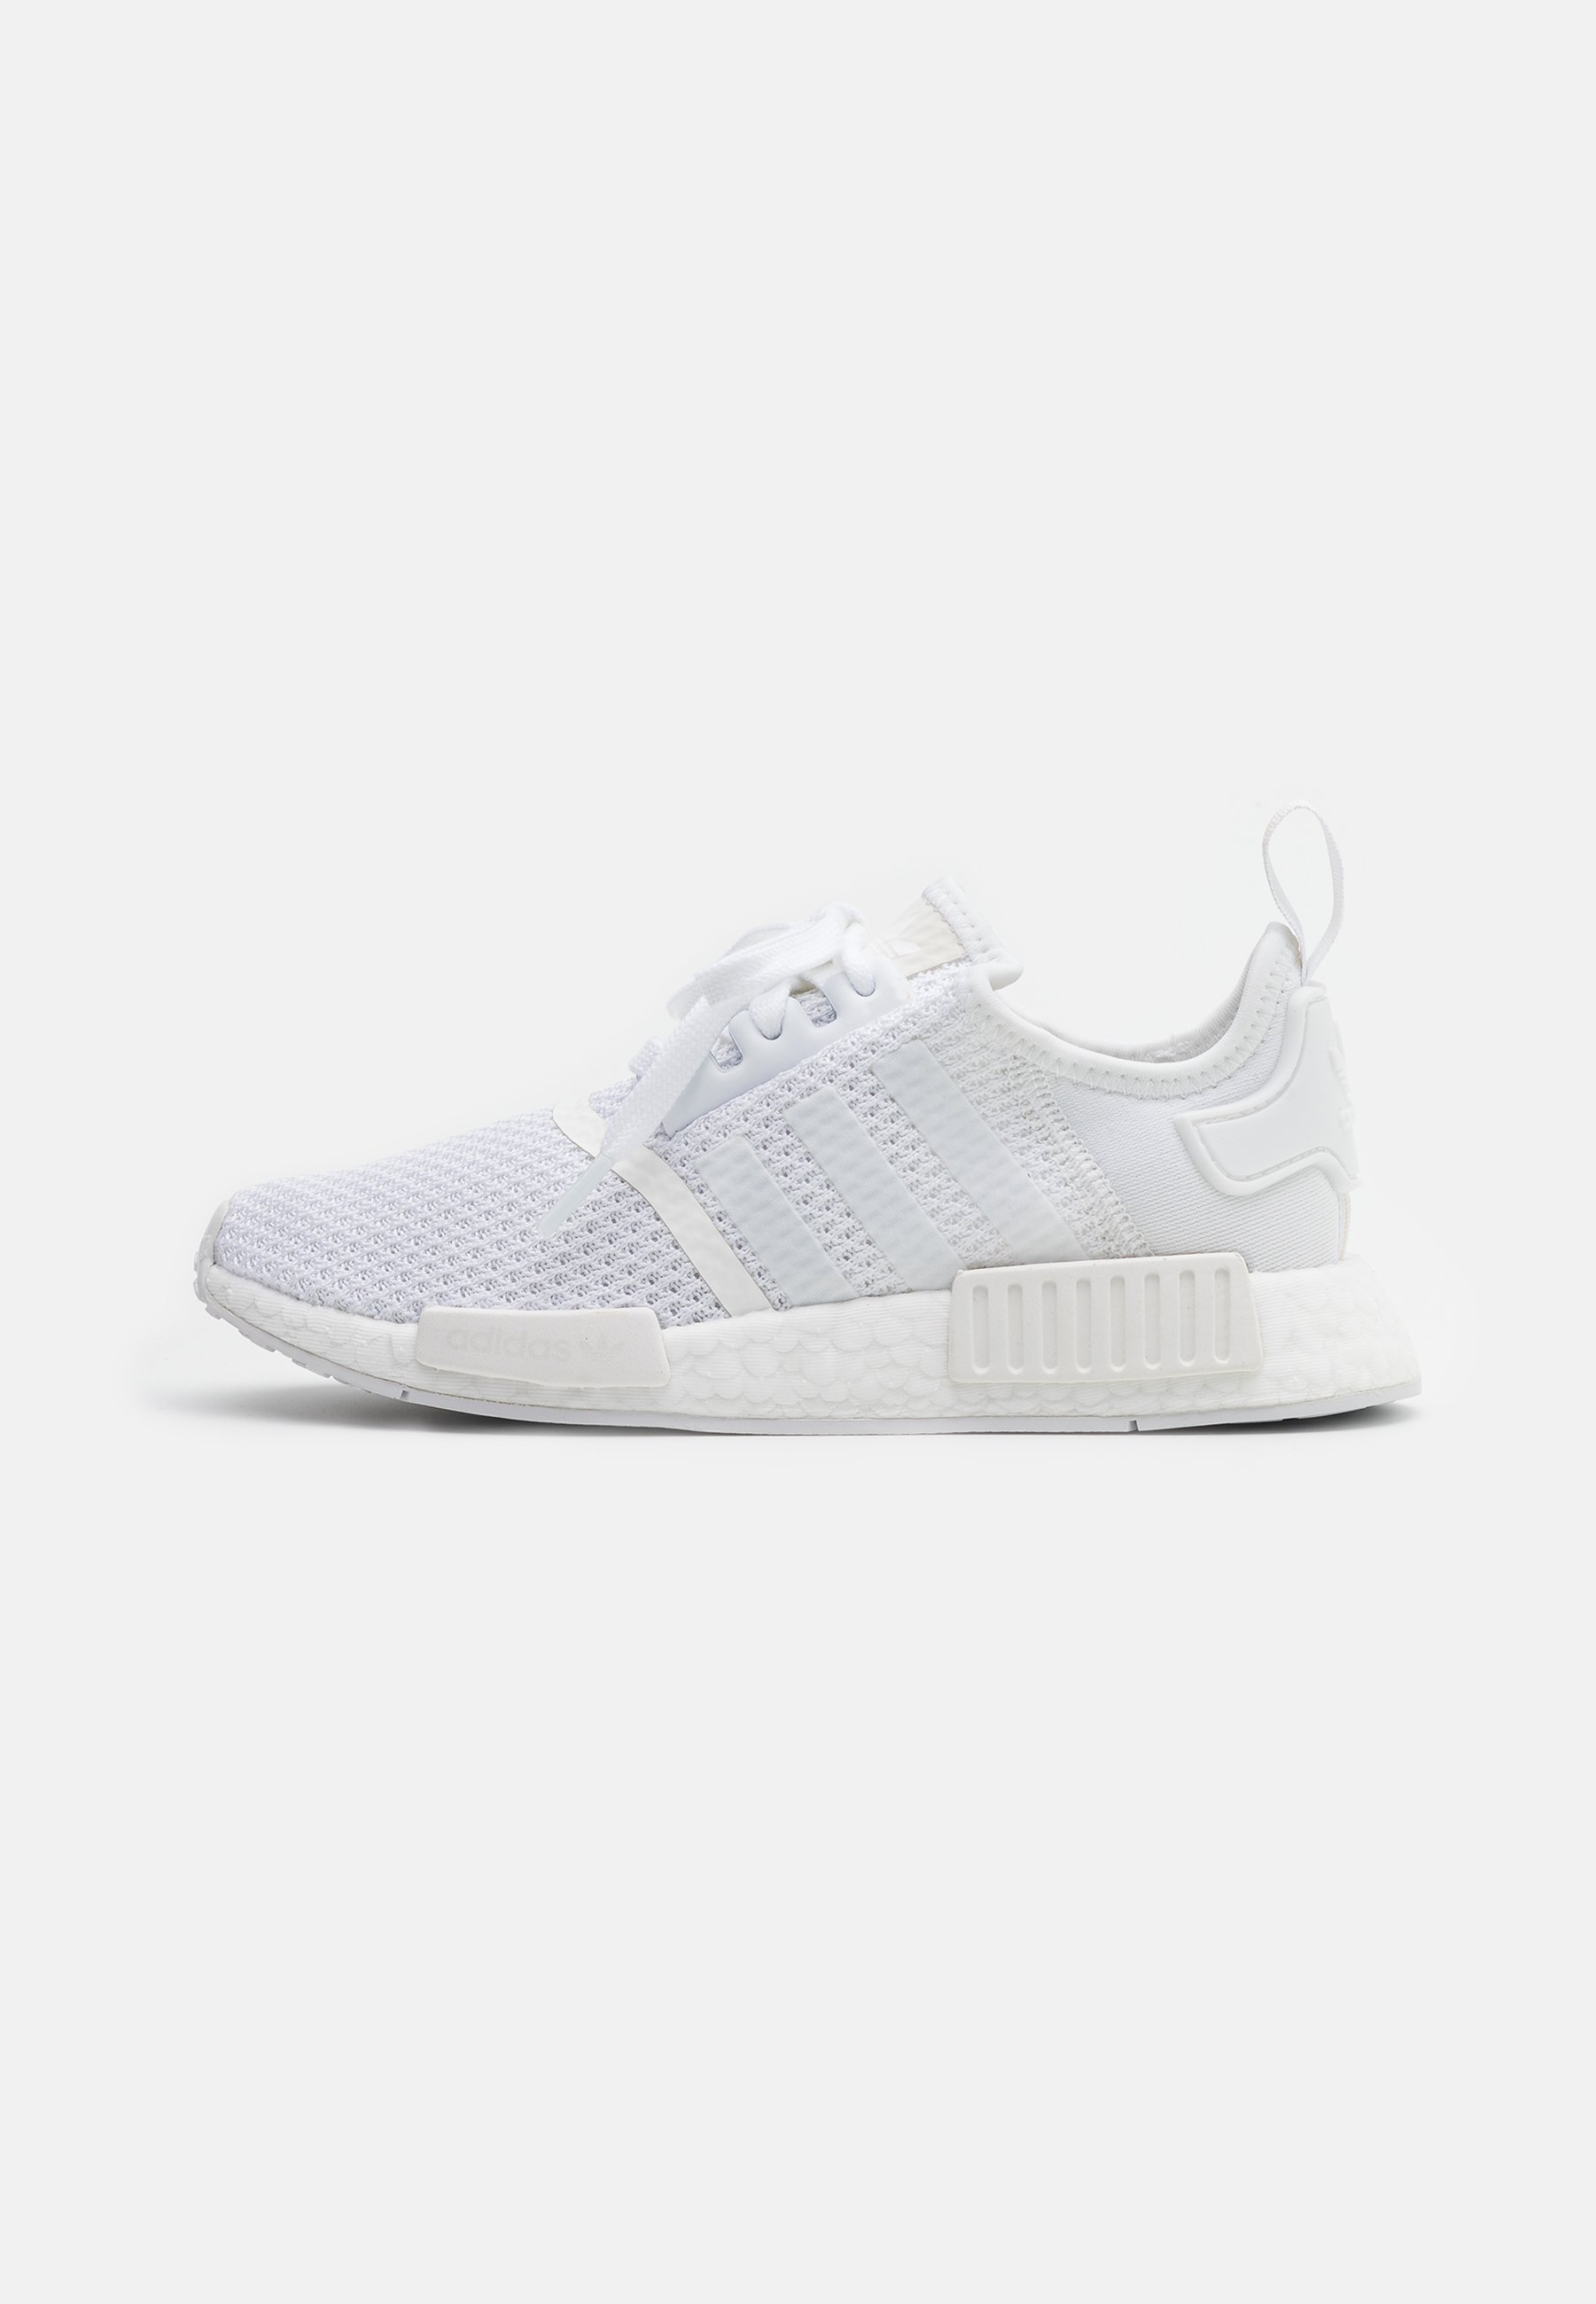 NMD_R1 BOOST SPORTS INSPIRED SHOES Sneakers footwear white